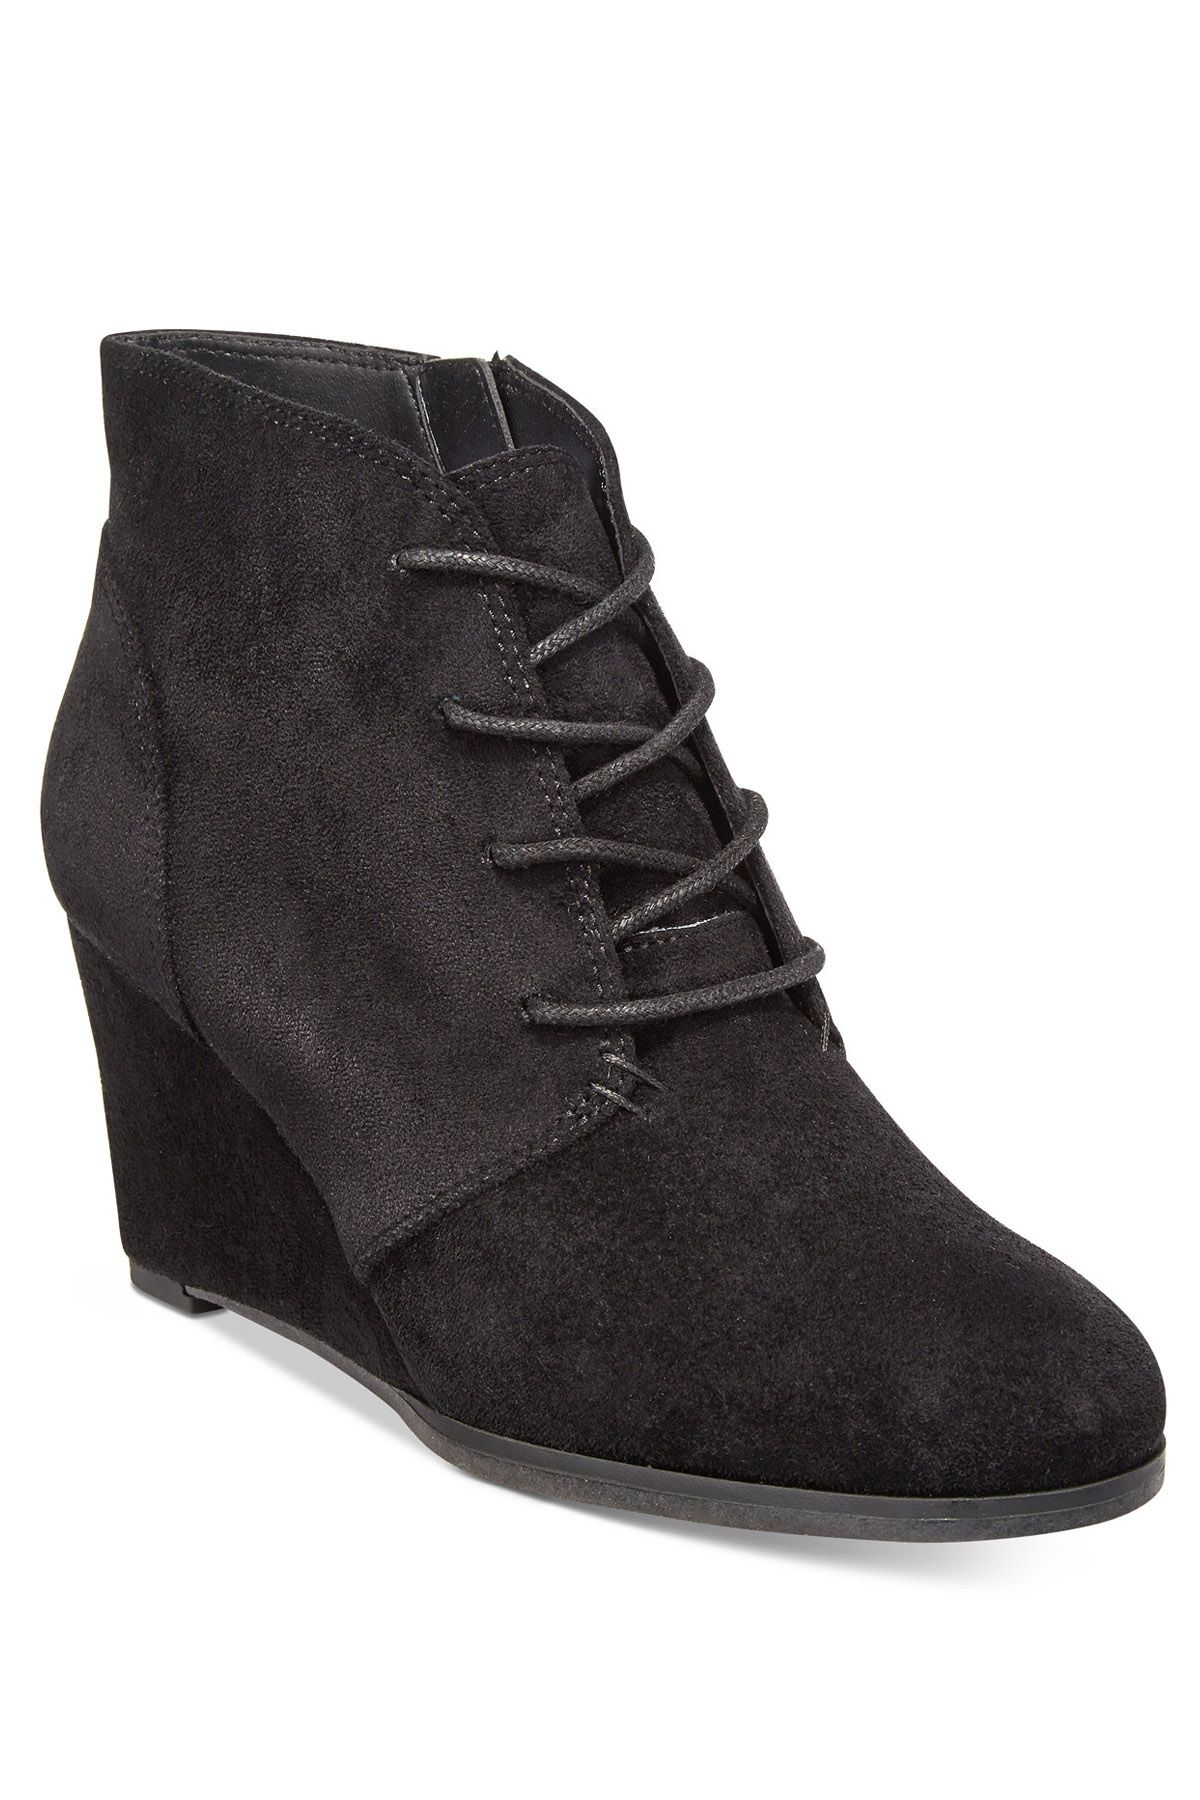 Fall Boots - American Rag Lace-Up Wedge Booties